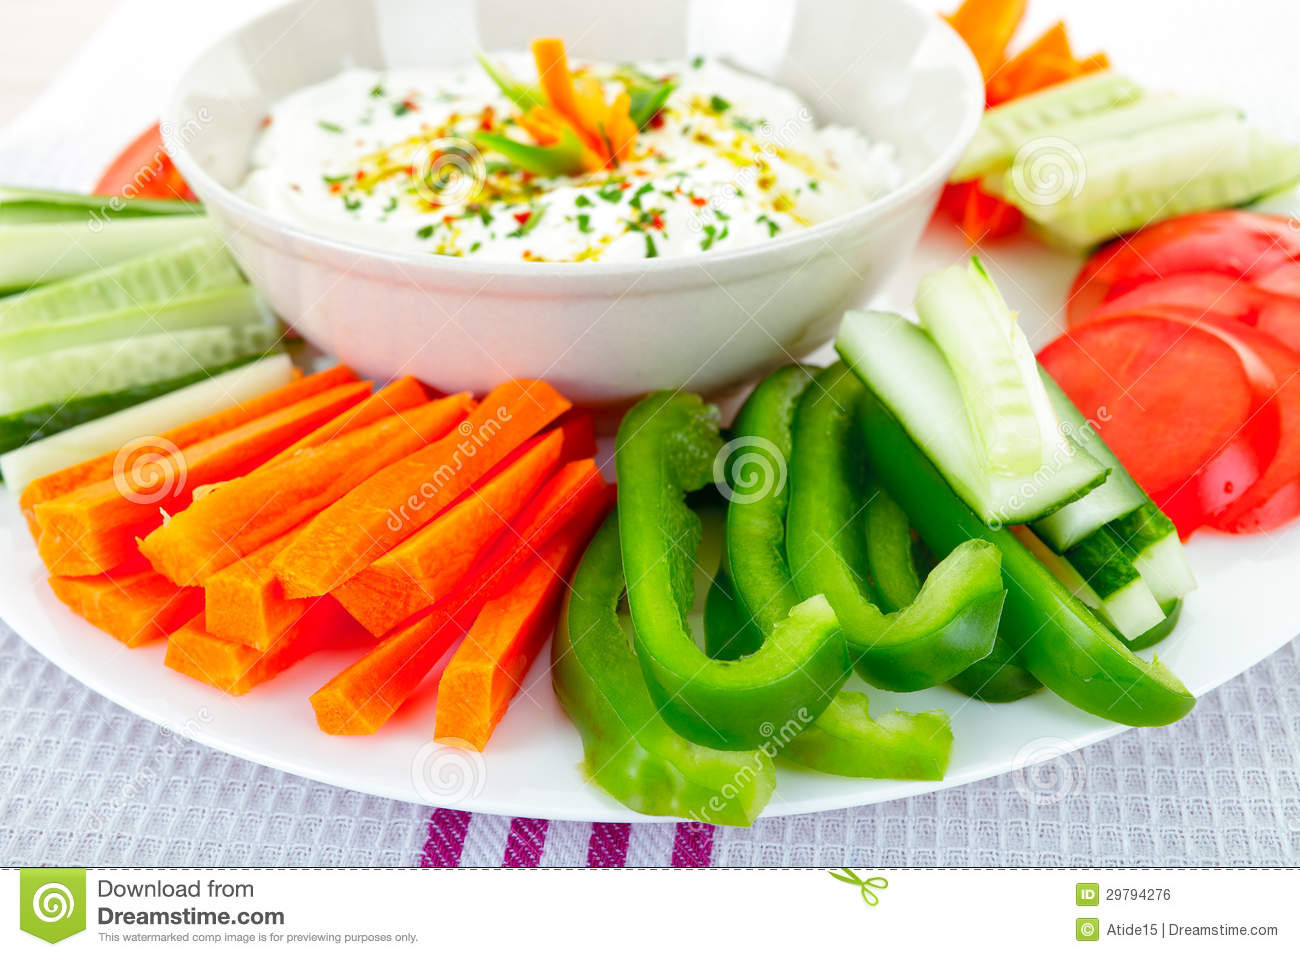 Healthy Vegetable Snacks  Dip And Ve ables Royalty Free Stock Image Image